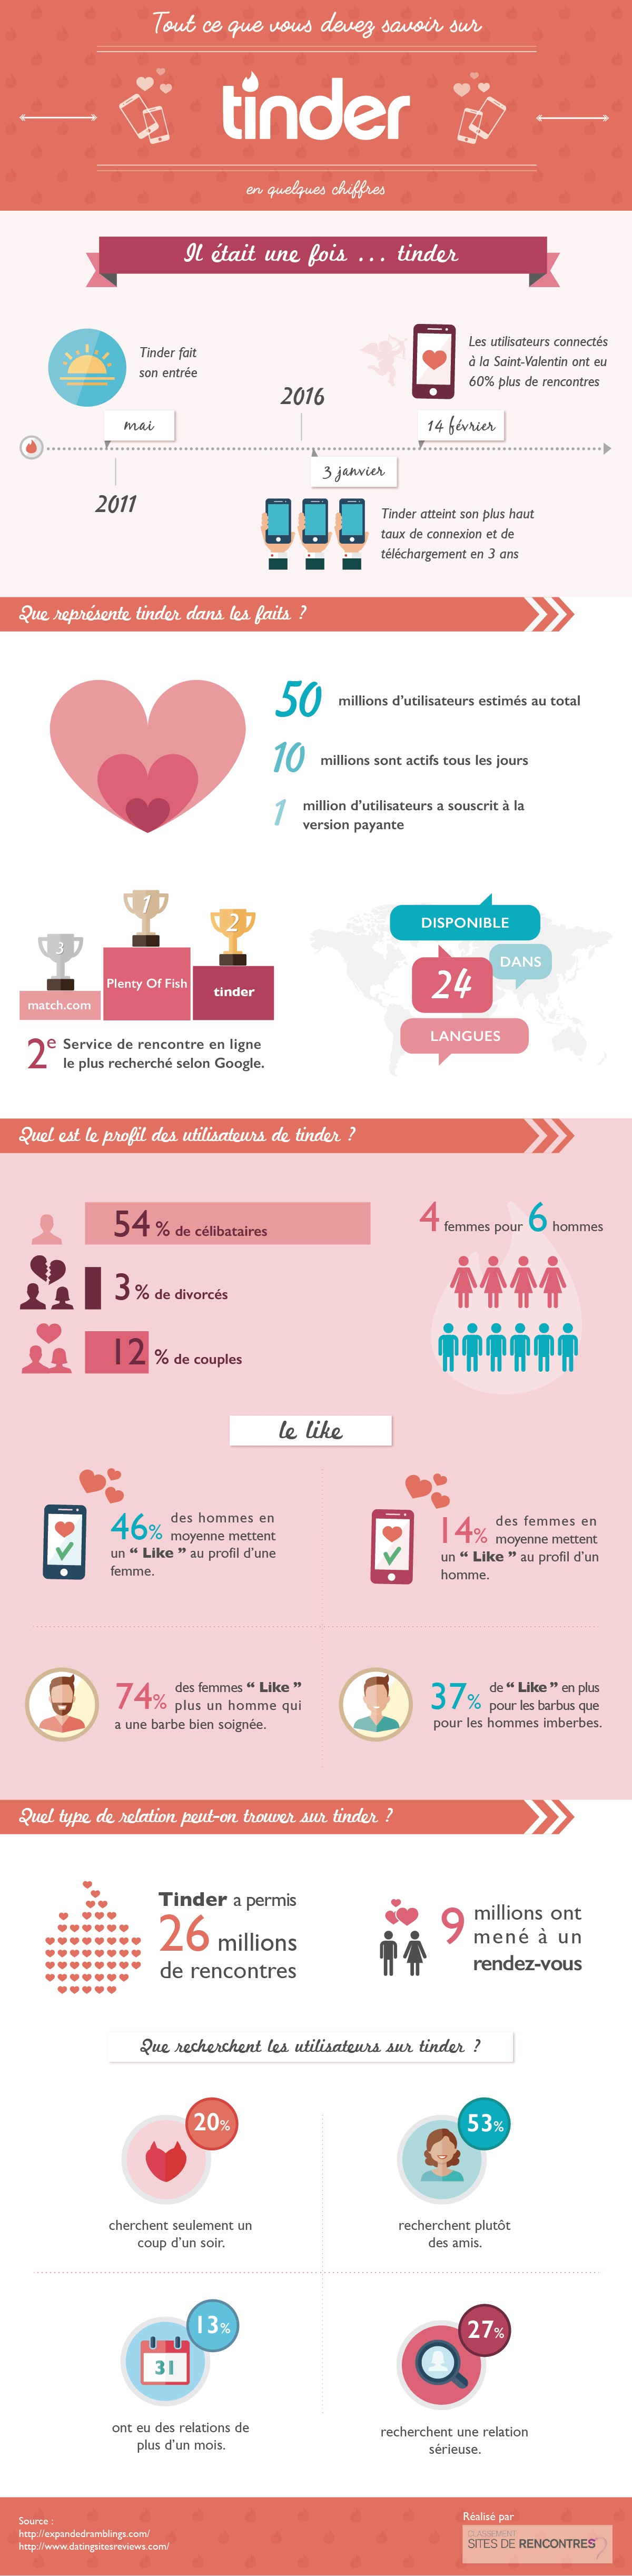 Infographie chiffres Tinder